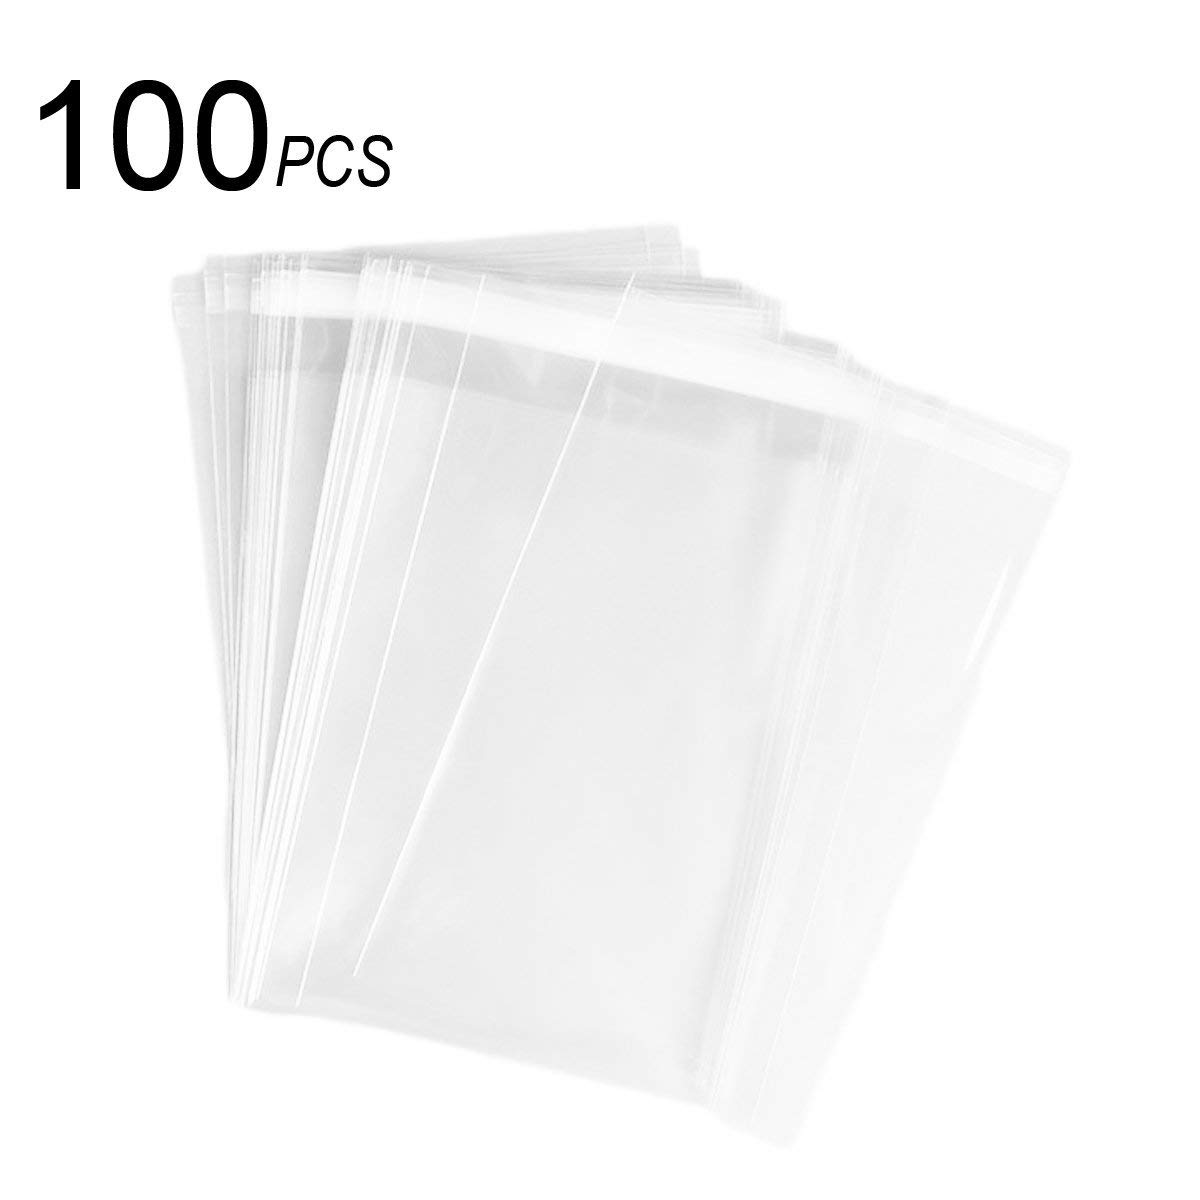 Soap Candle Cookie 100 Pack 8.5x12 Inch Clear Resealable Cello//Cellophane Bags for Bakery